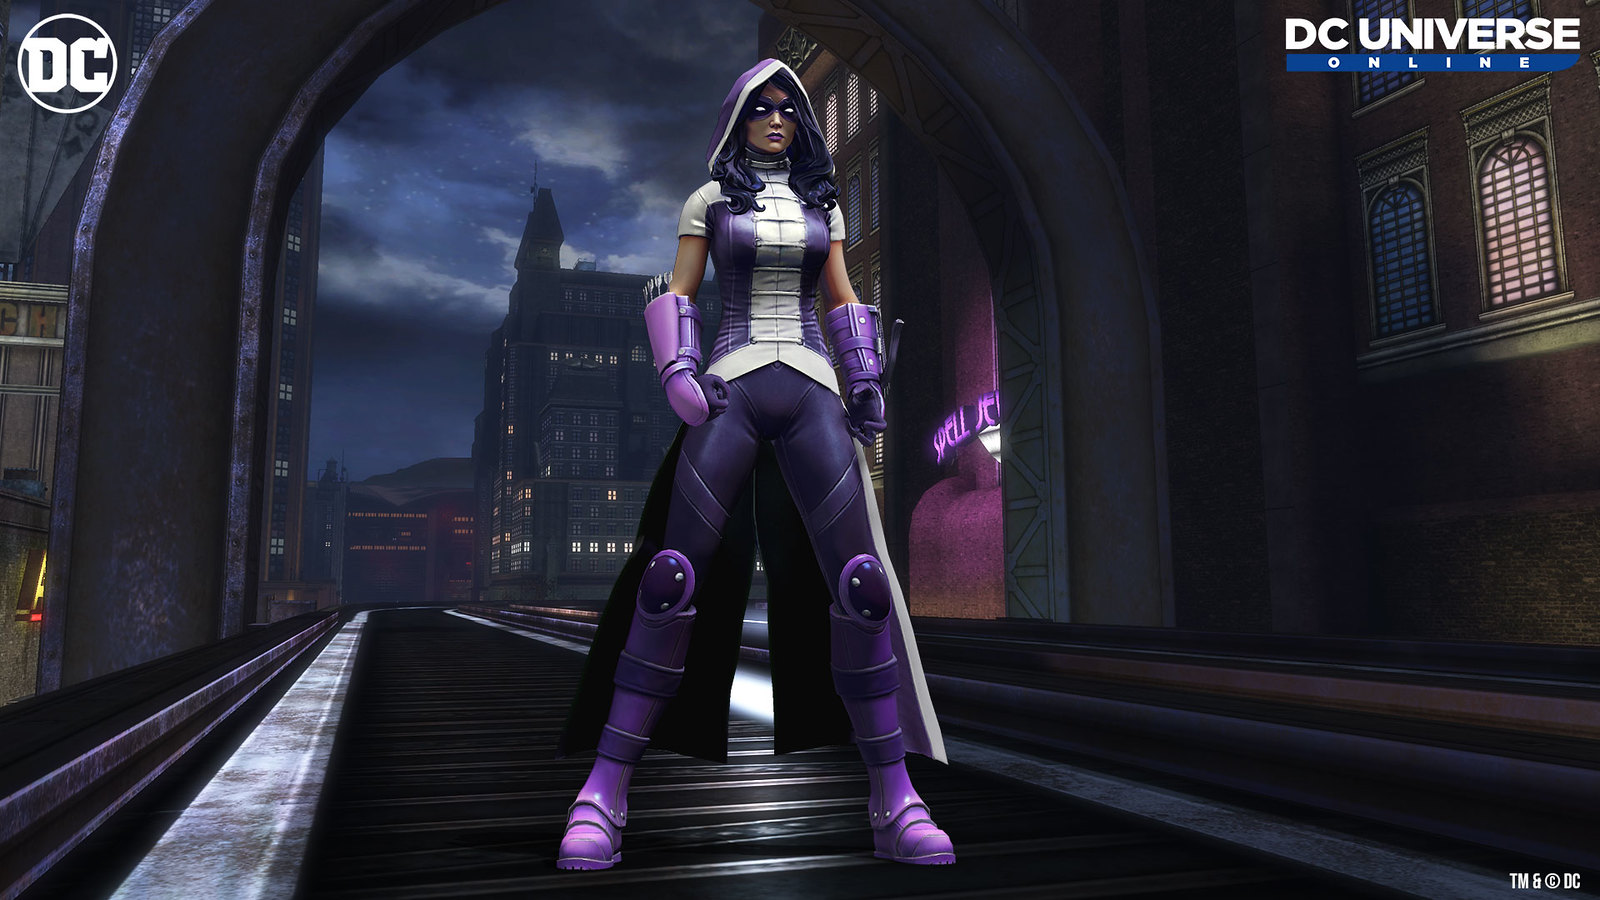 DC Universe Online: Birds of Prey - The Huntress